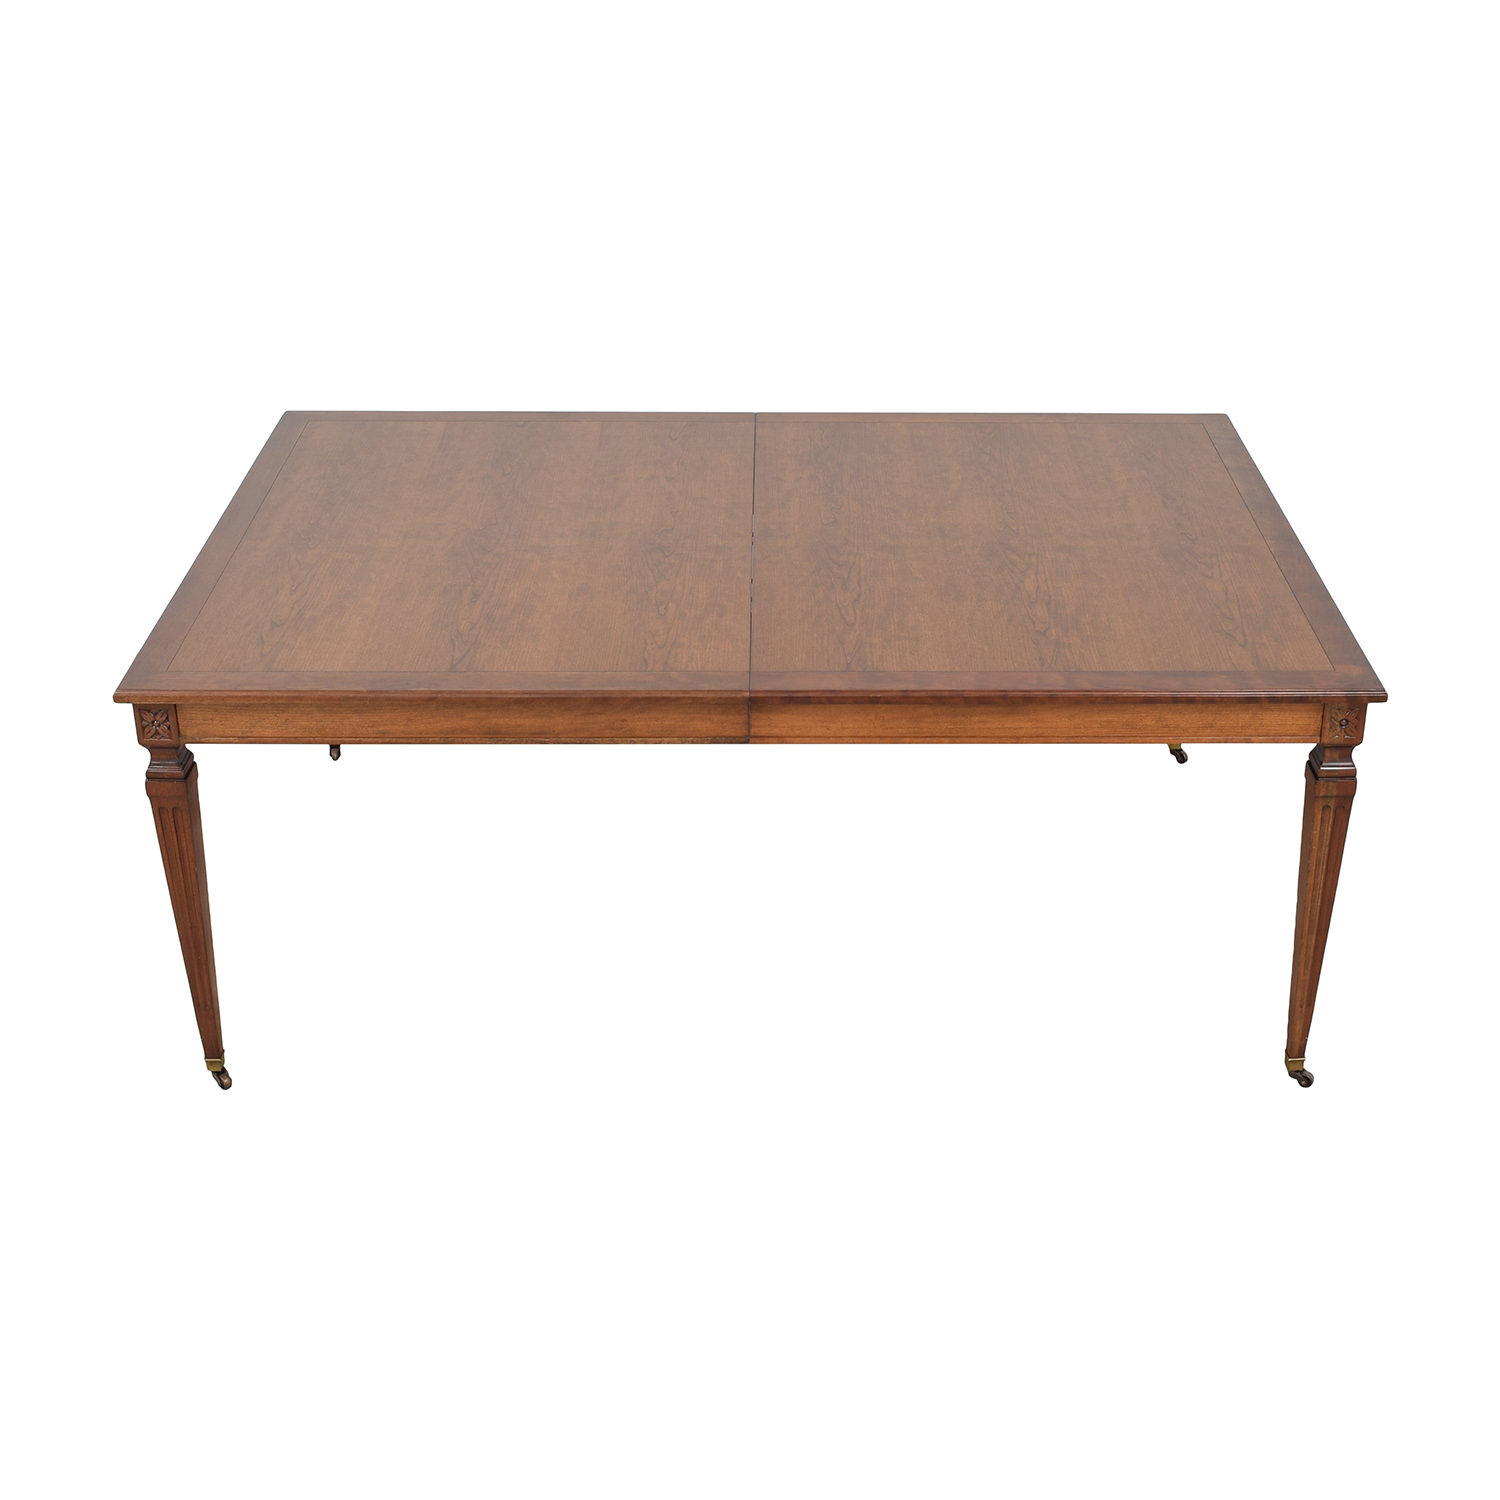 Extension Dining Table second hand